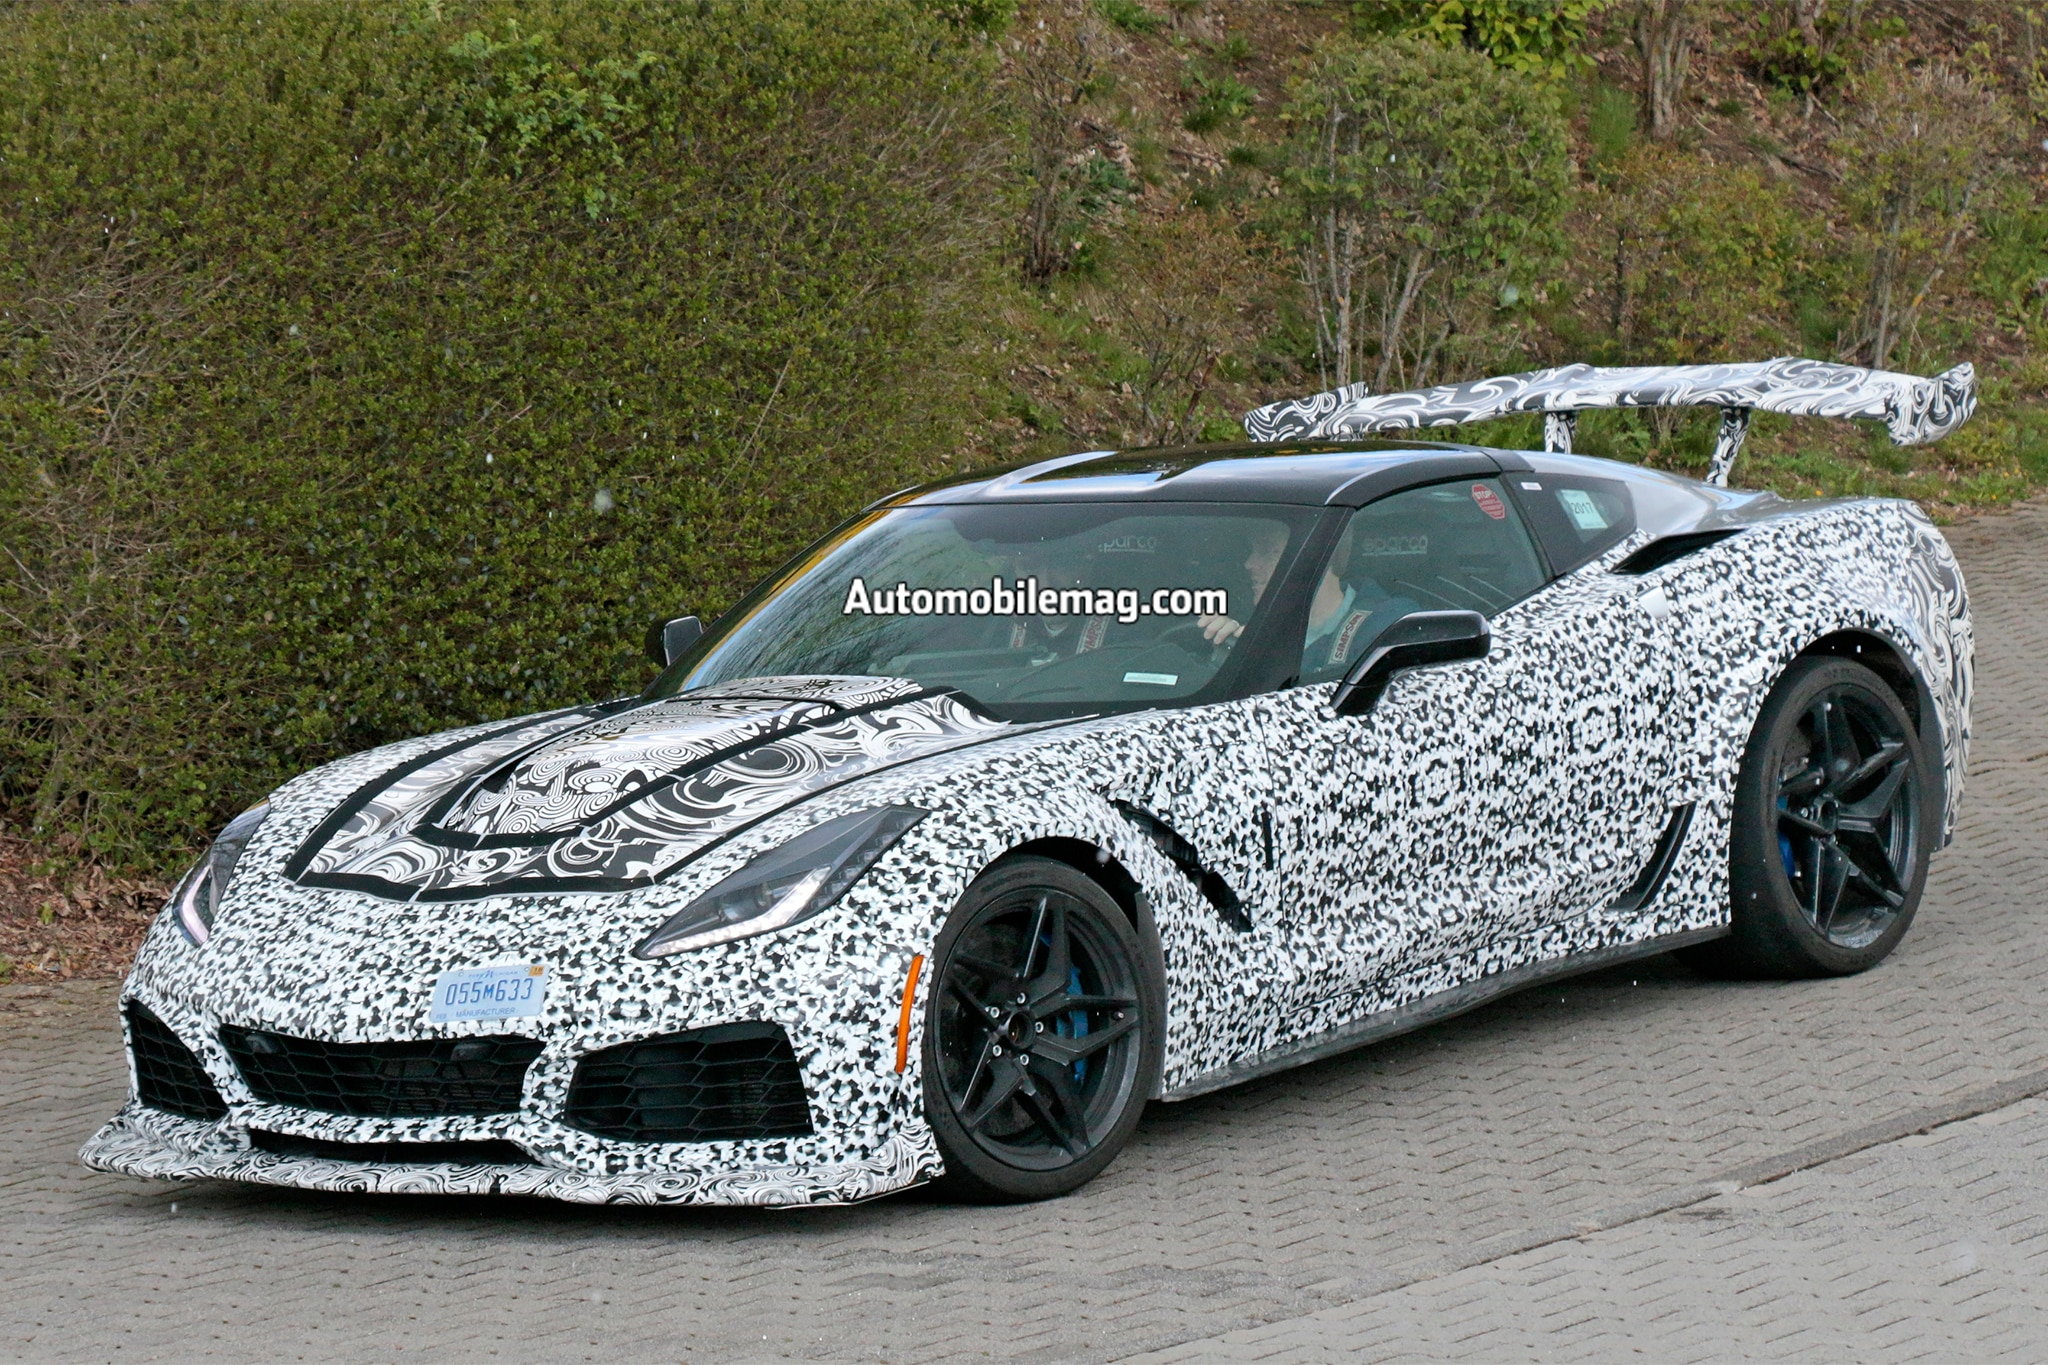 2018 chevrolet corvette zr1 spied testing at the nurburgring automobile magazine. Black Bedroom Furniture Sets. Home Design Ideas